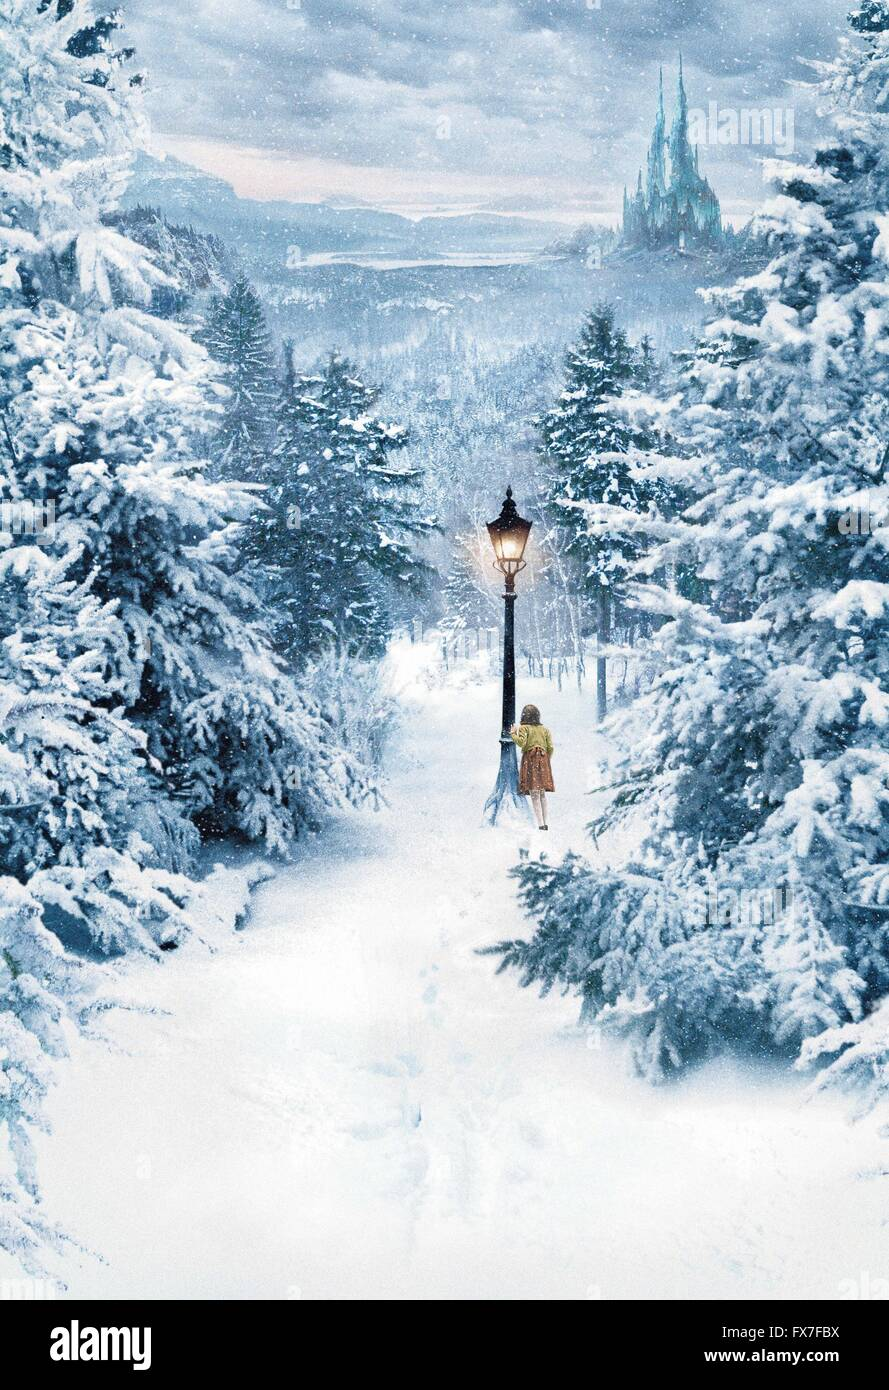 Narnia Landscape High Resolution Stock Photography And Images Alamy